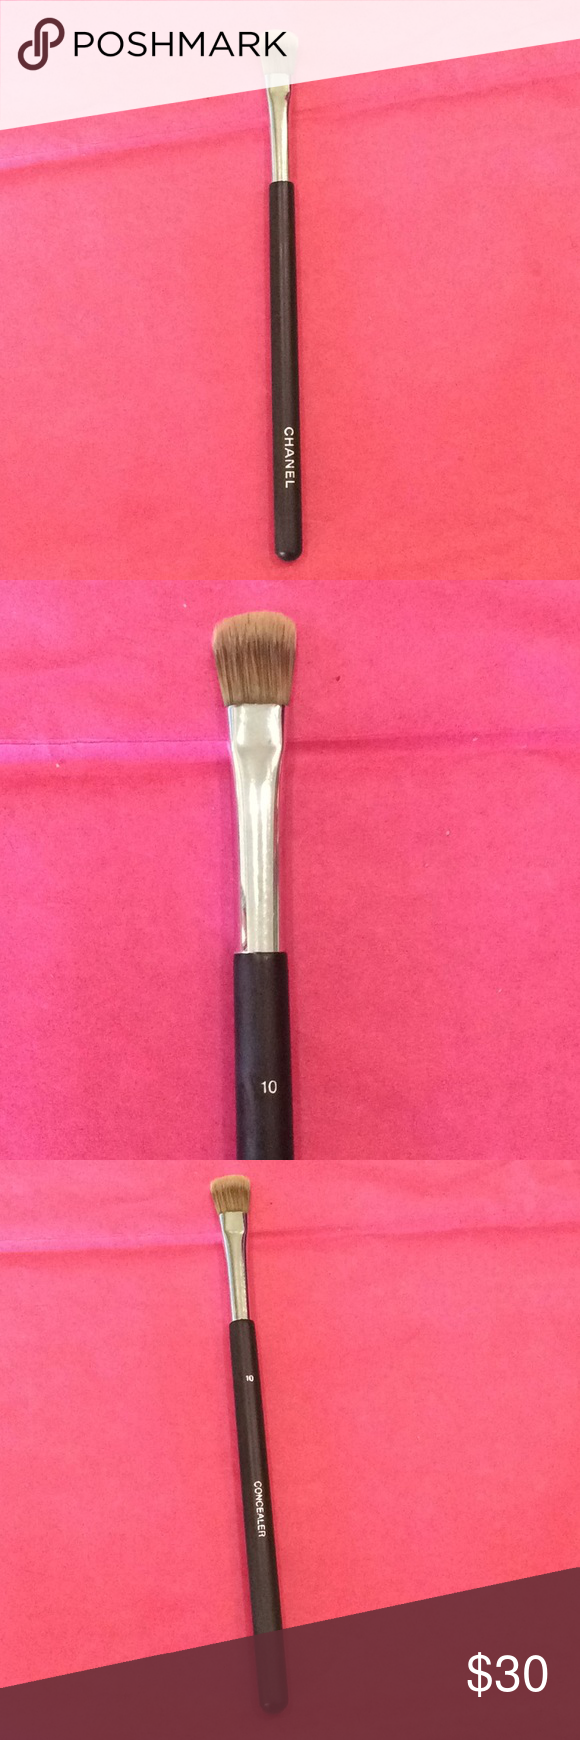 50e2513fac Chanel corrector concealer brush #10 sold out Used once at beauty ...